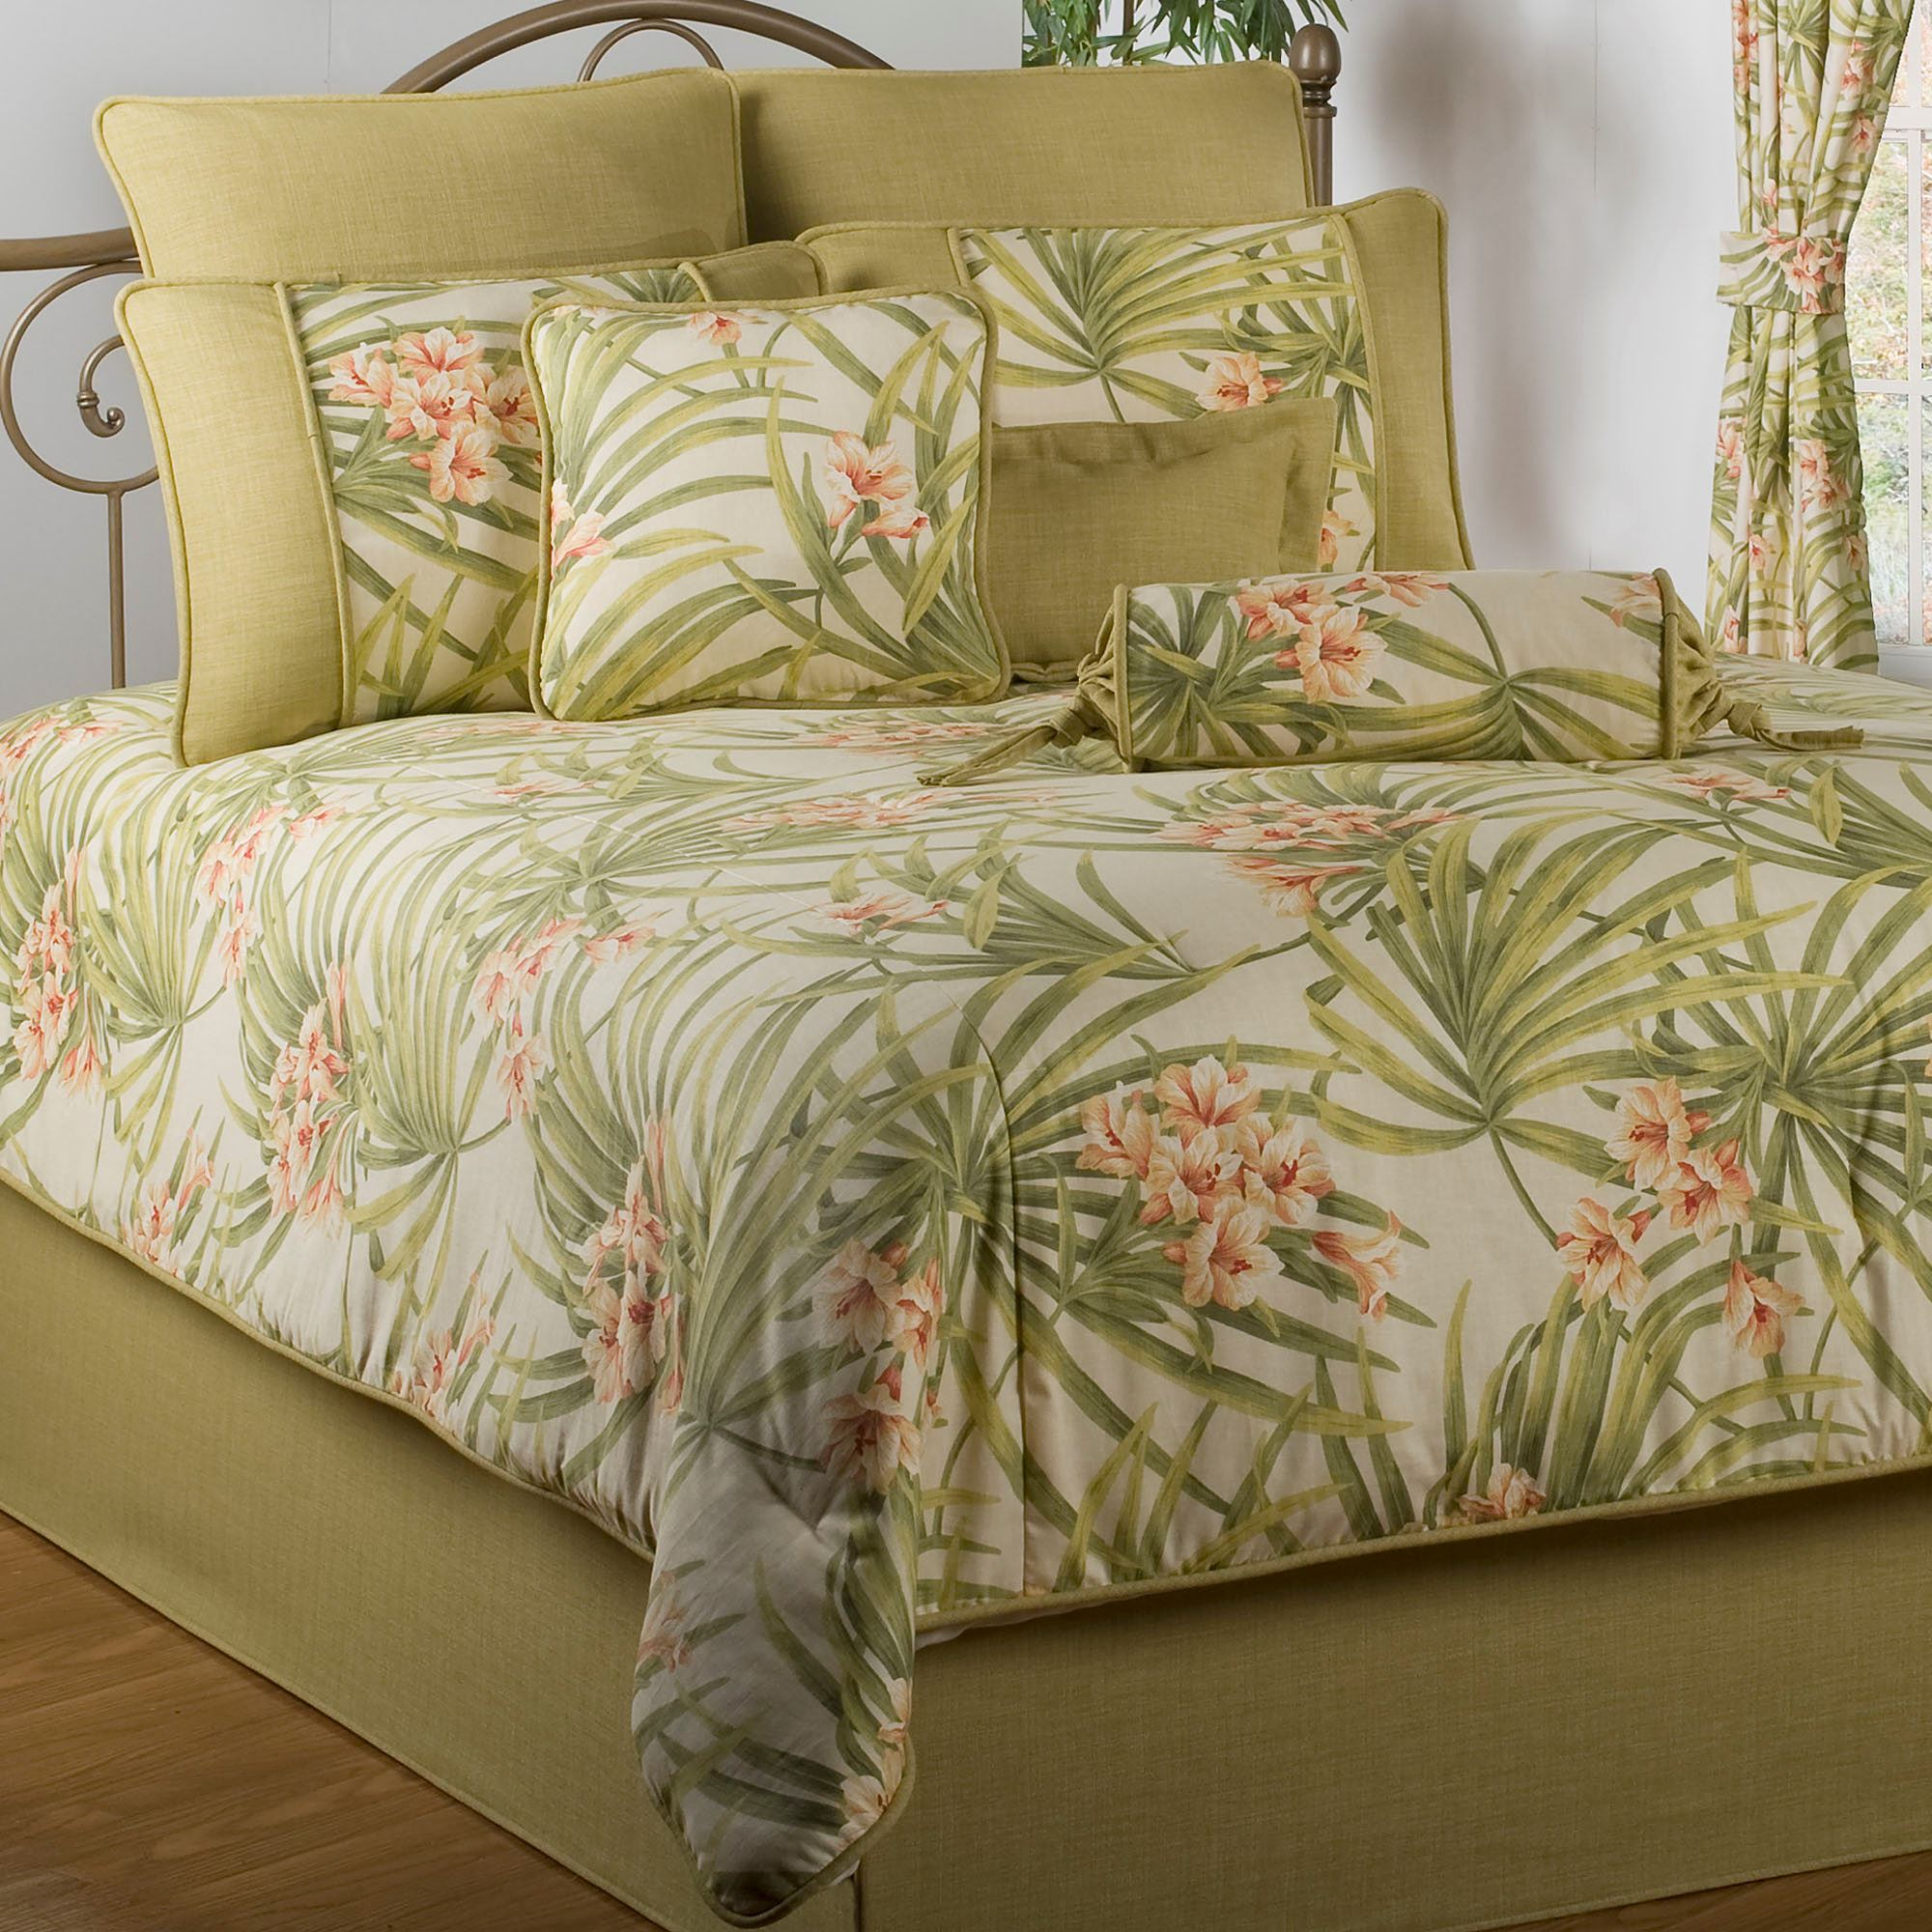 Tropical Bedding Sets California King